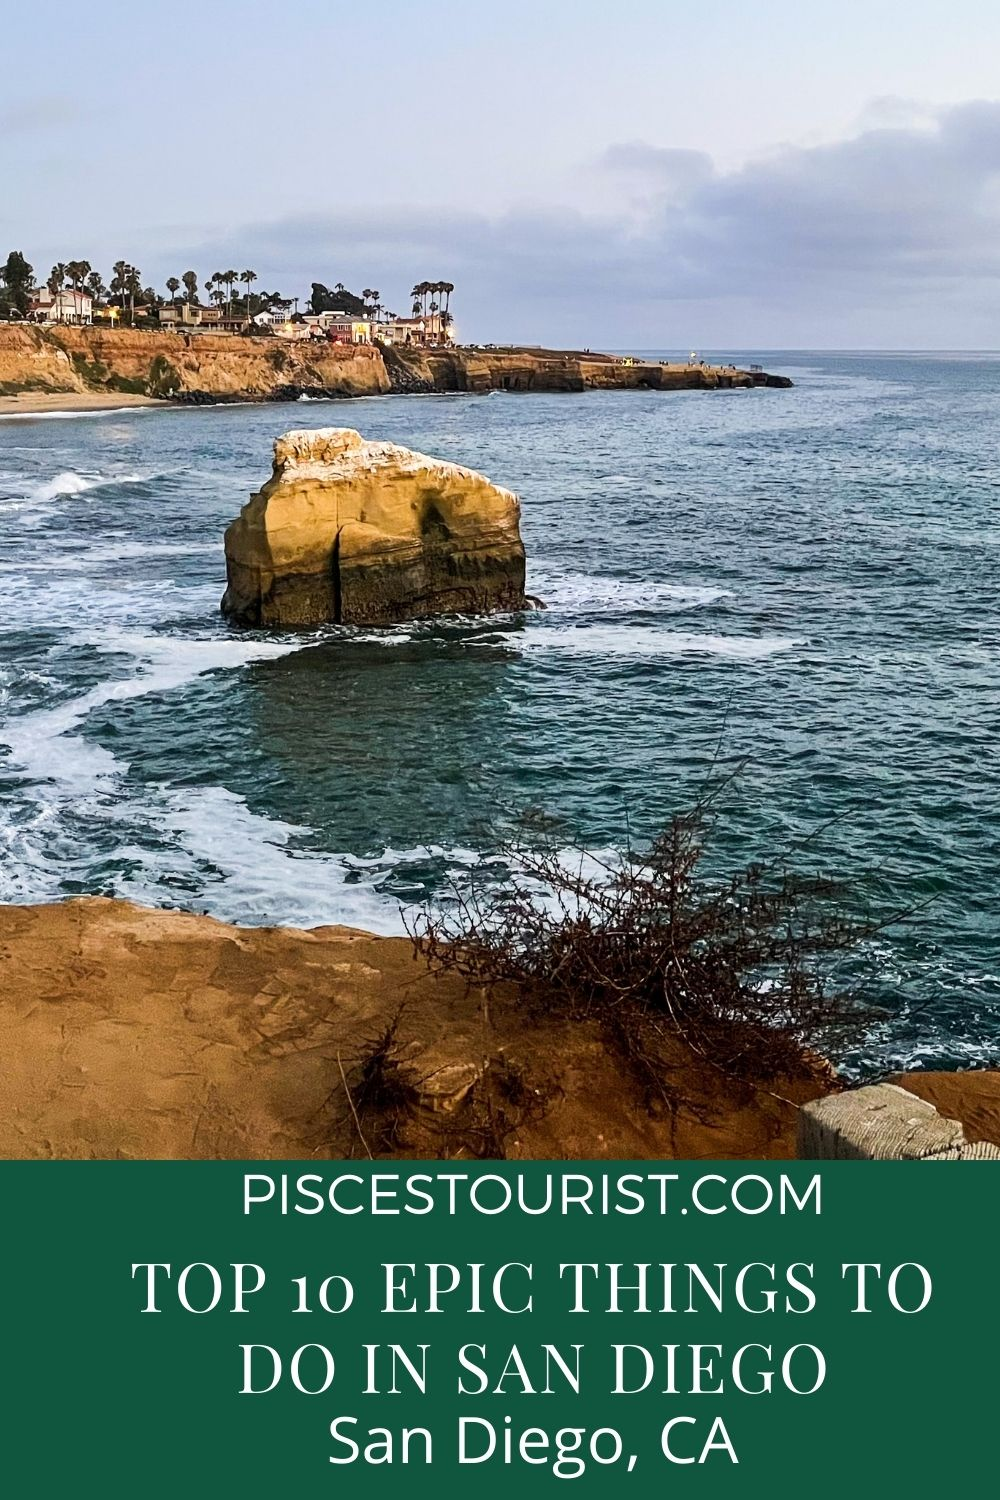 10_Best_Things_To_Do_In_San_Diego_Pisces_Tourist._2JPG